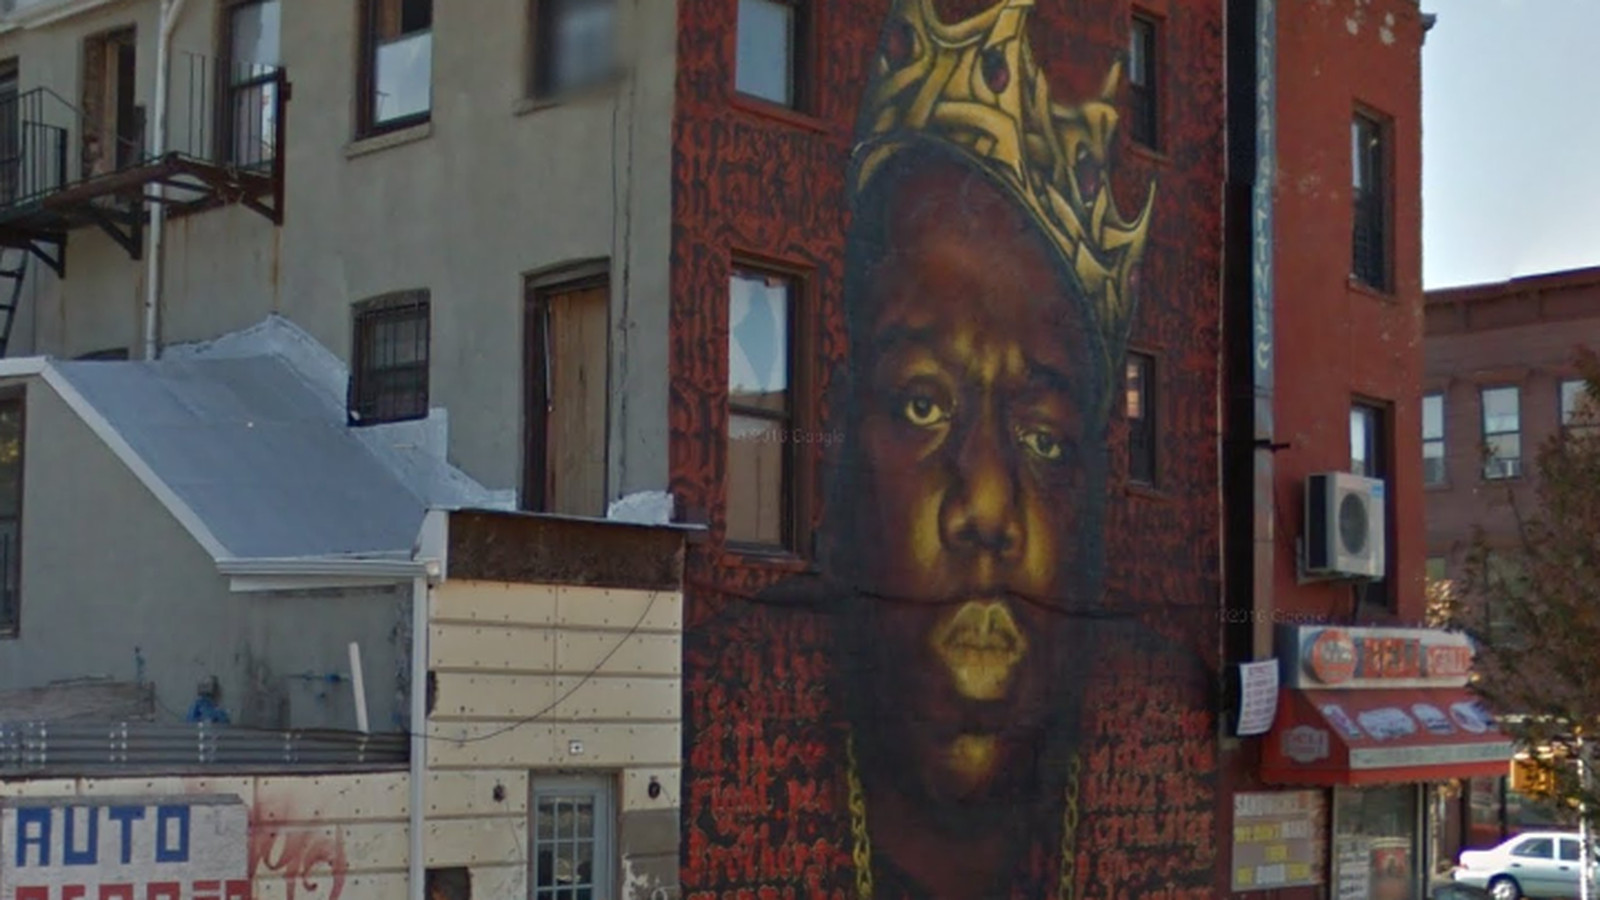 The notorious b i g mural in bed stuy won t come down for Biggie smalls mural brooklyn